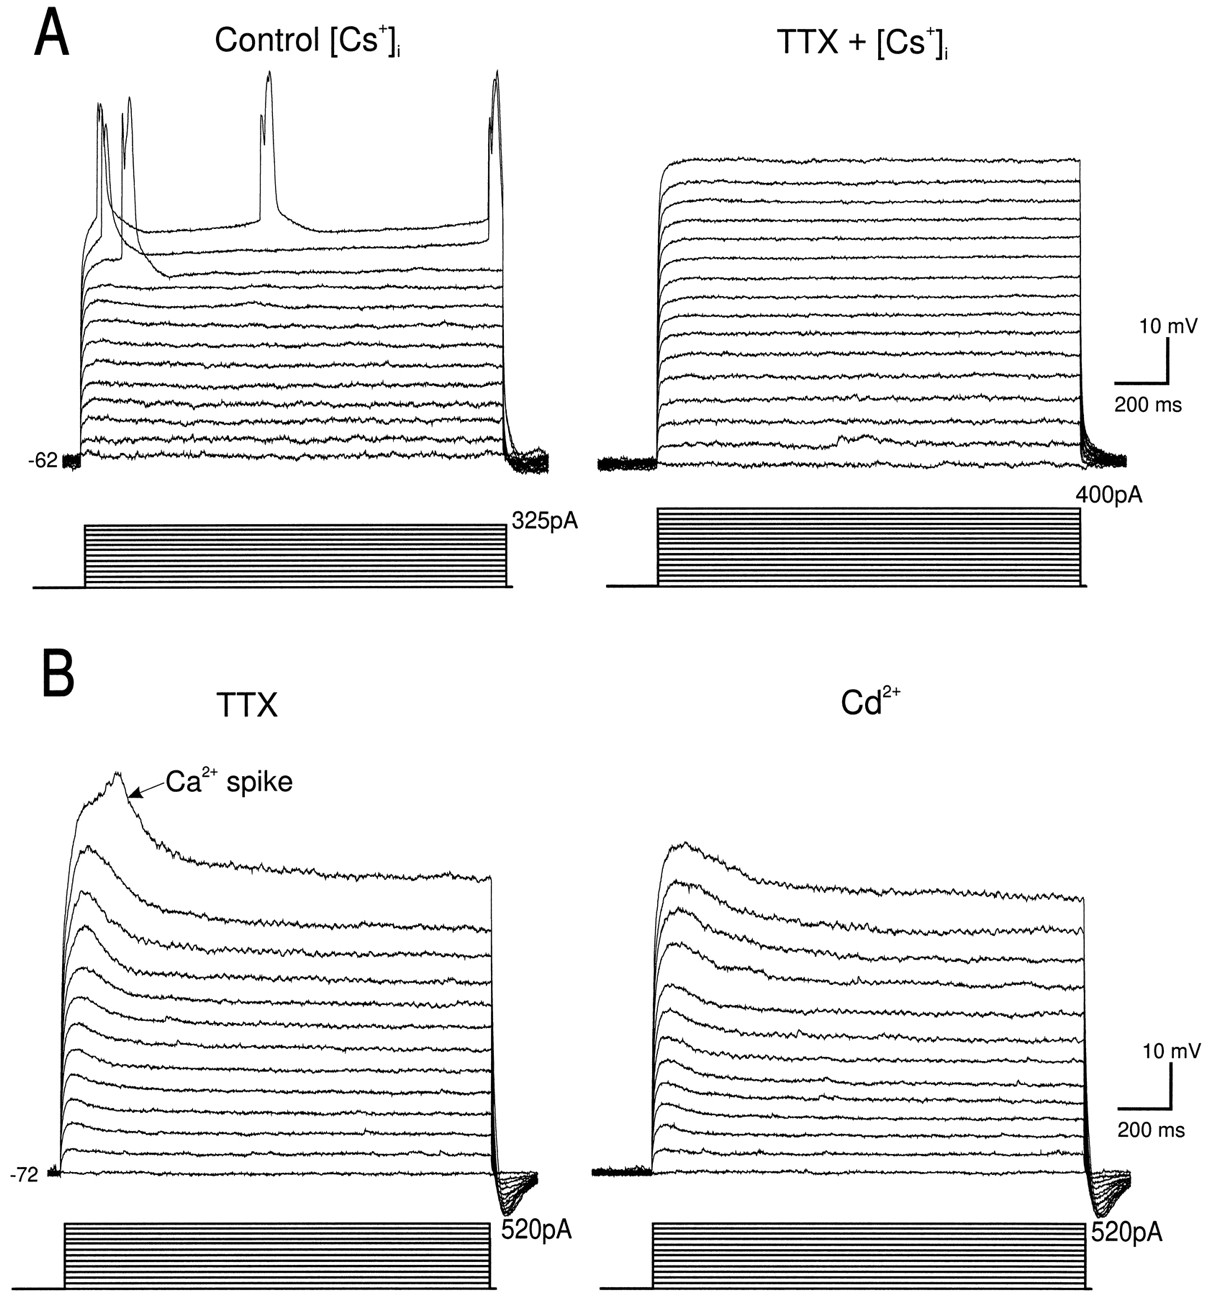 Contributions of Voltage-Gated Ca2+ Channels in the Proximal versus